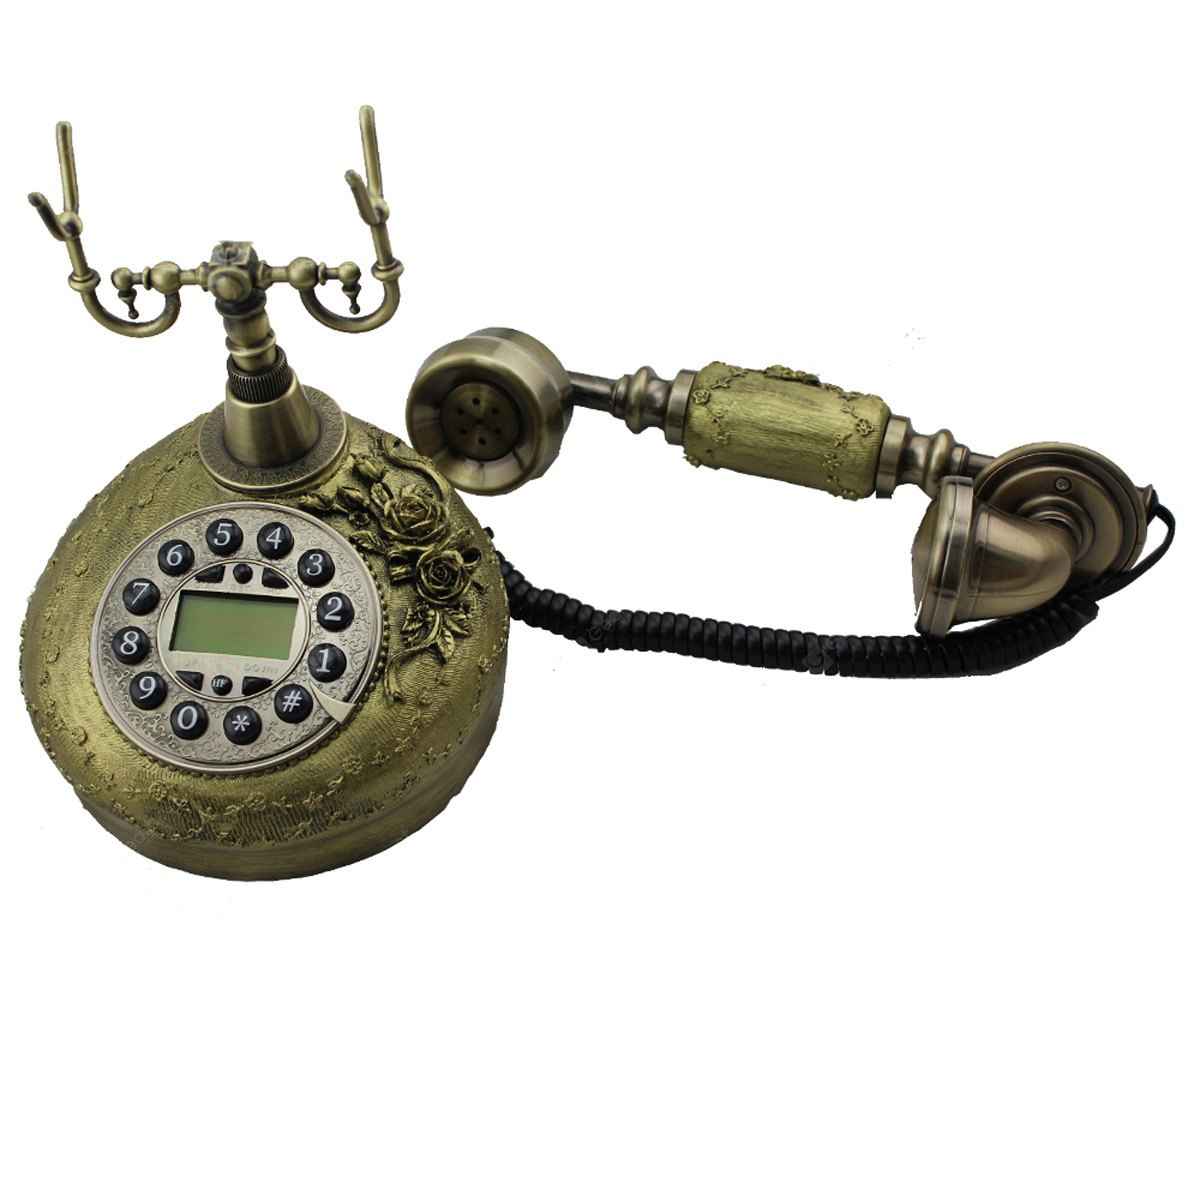 Functional Classic - Retro Telephone for Home Use